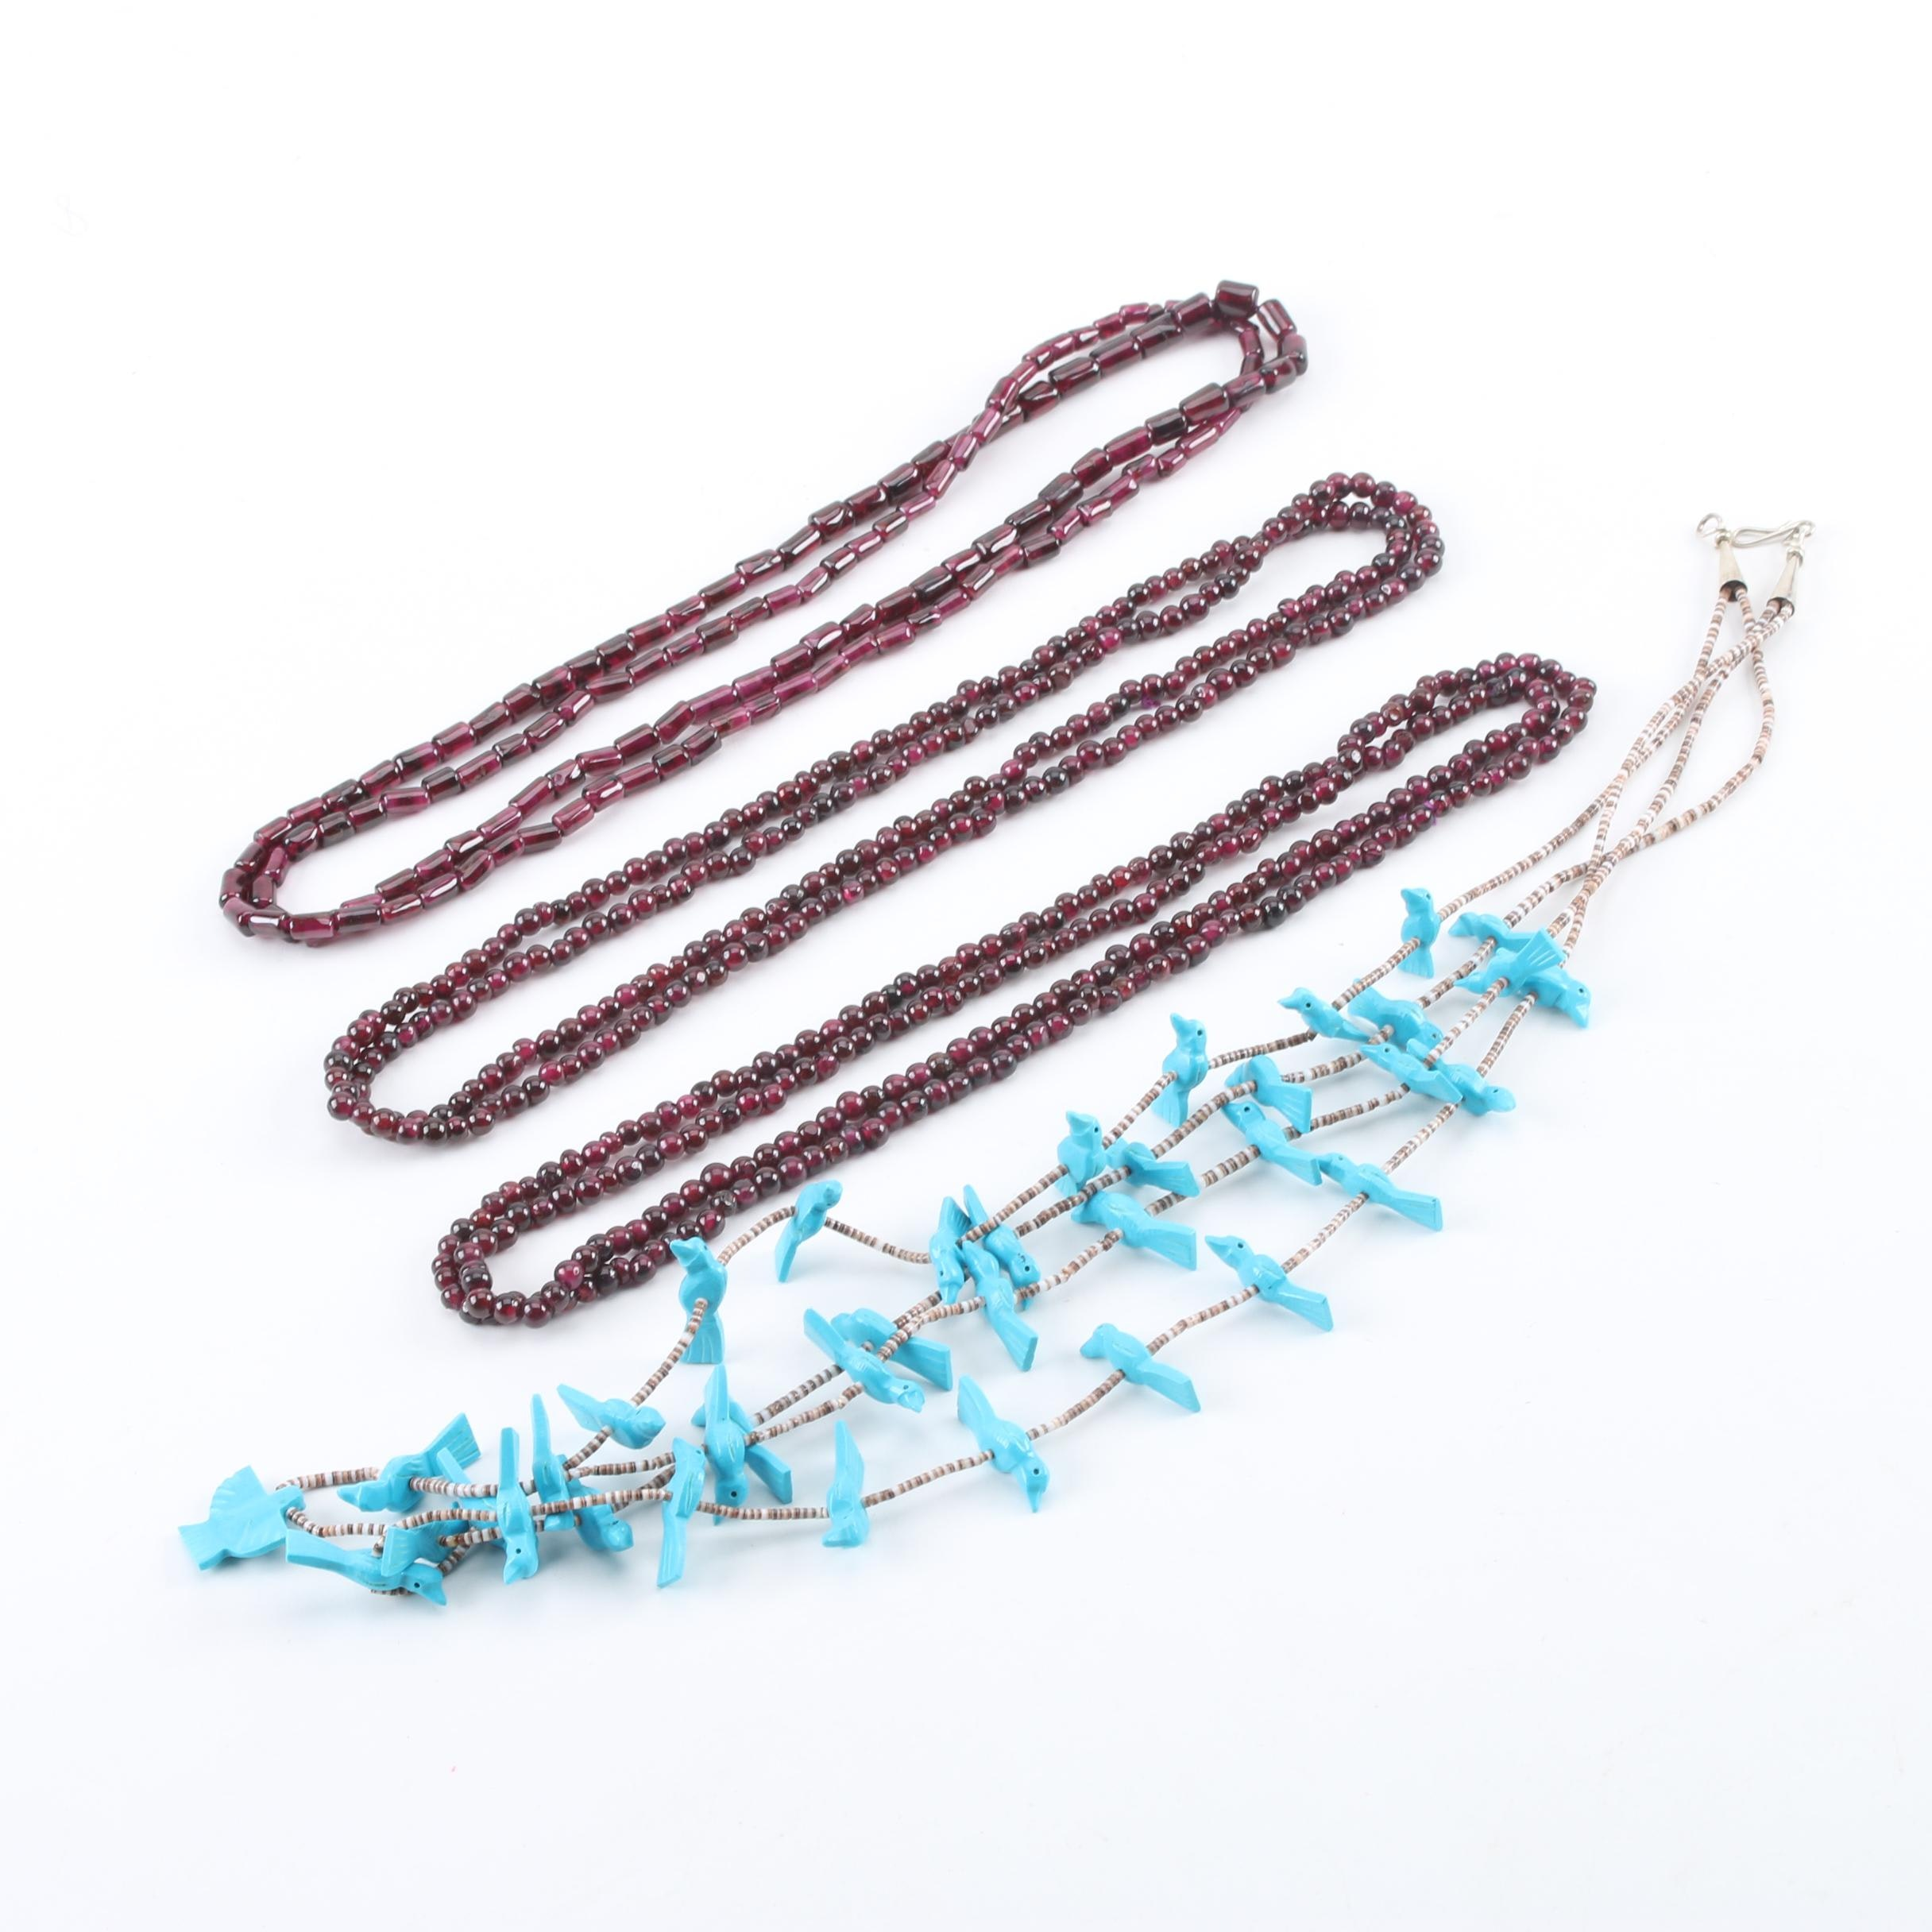 Necklace Selection Including Sterling Silver, Garnet and Imitation Turquoise